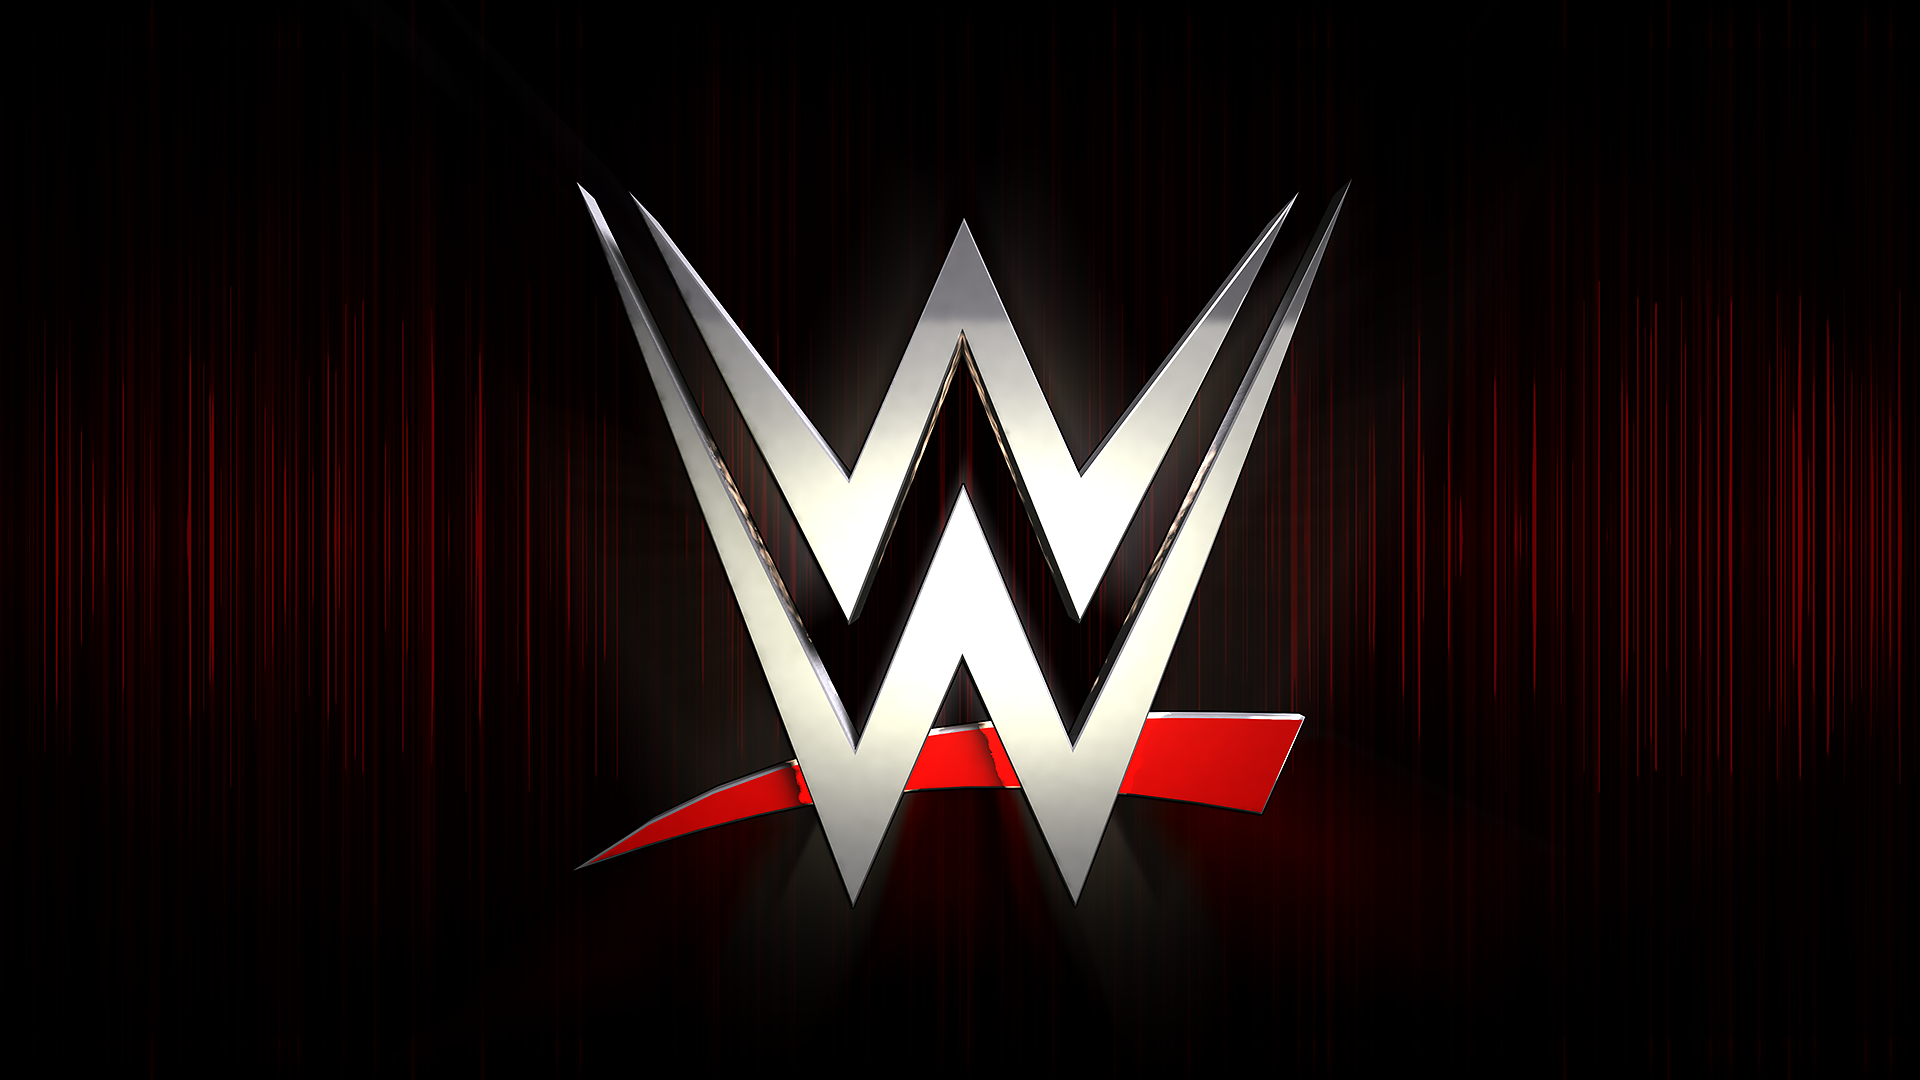 WWE Logo | new WWE logo wallpaper by MajinKhaN